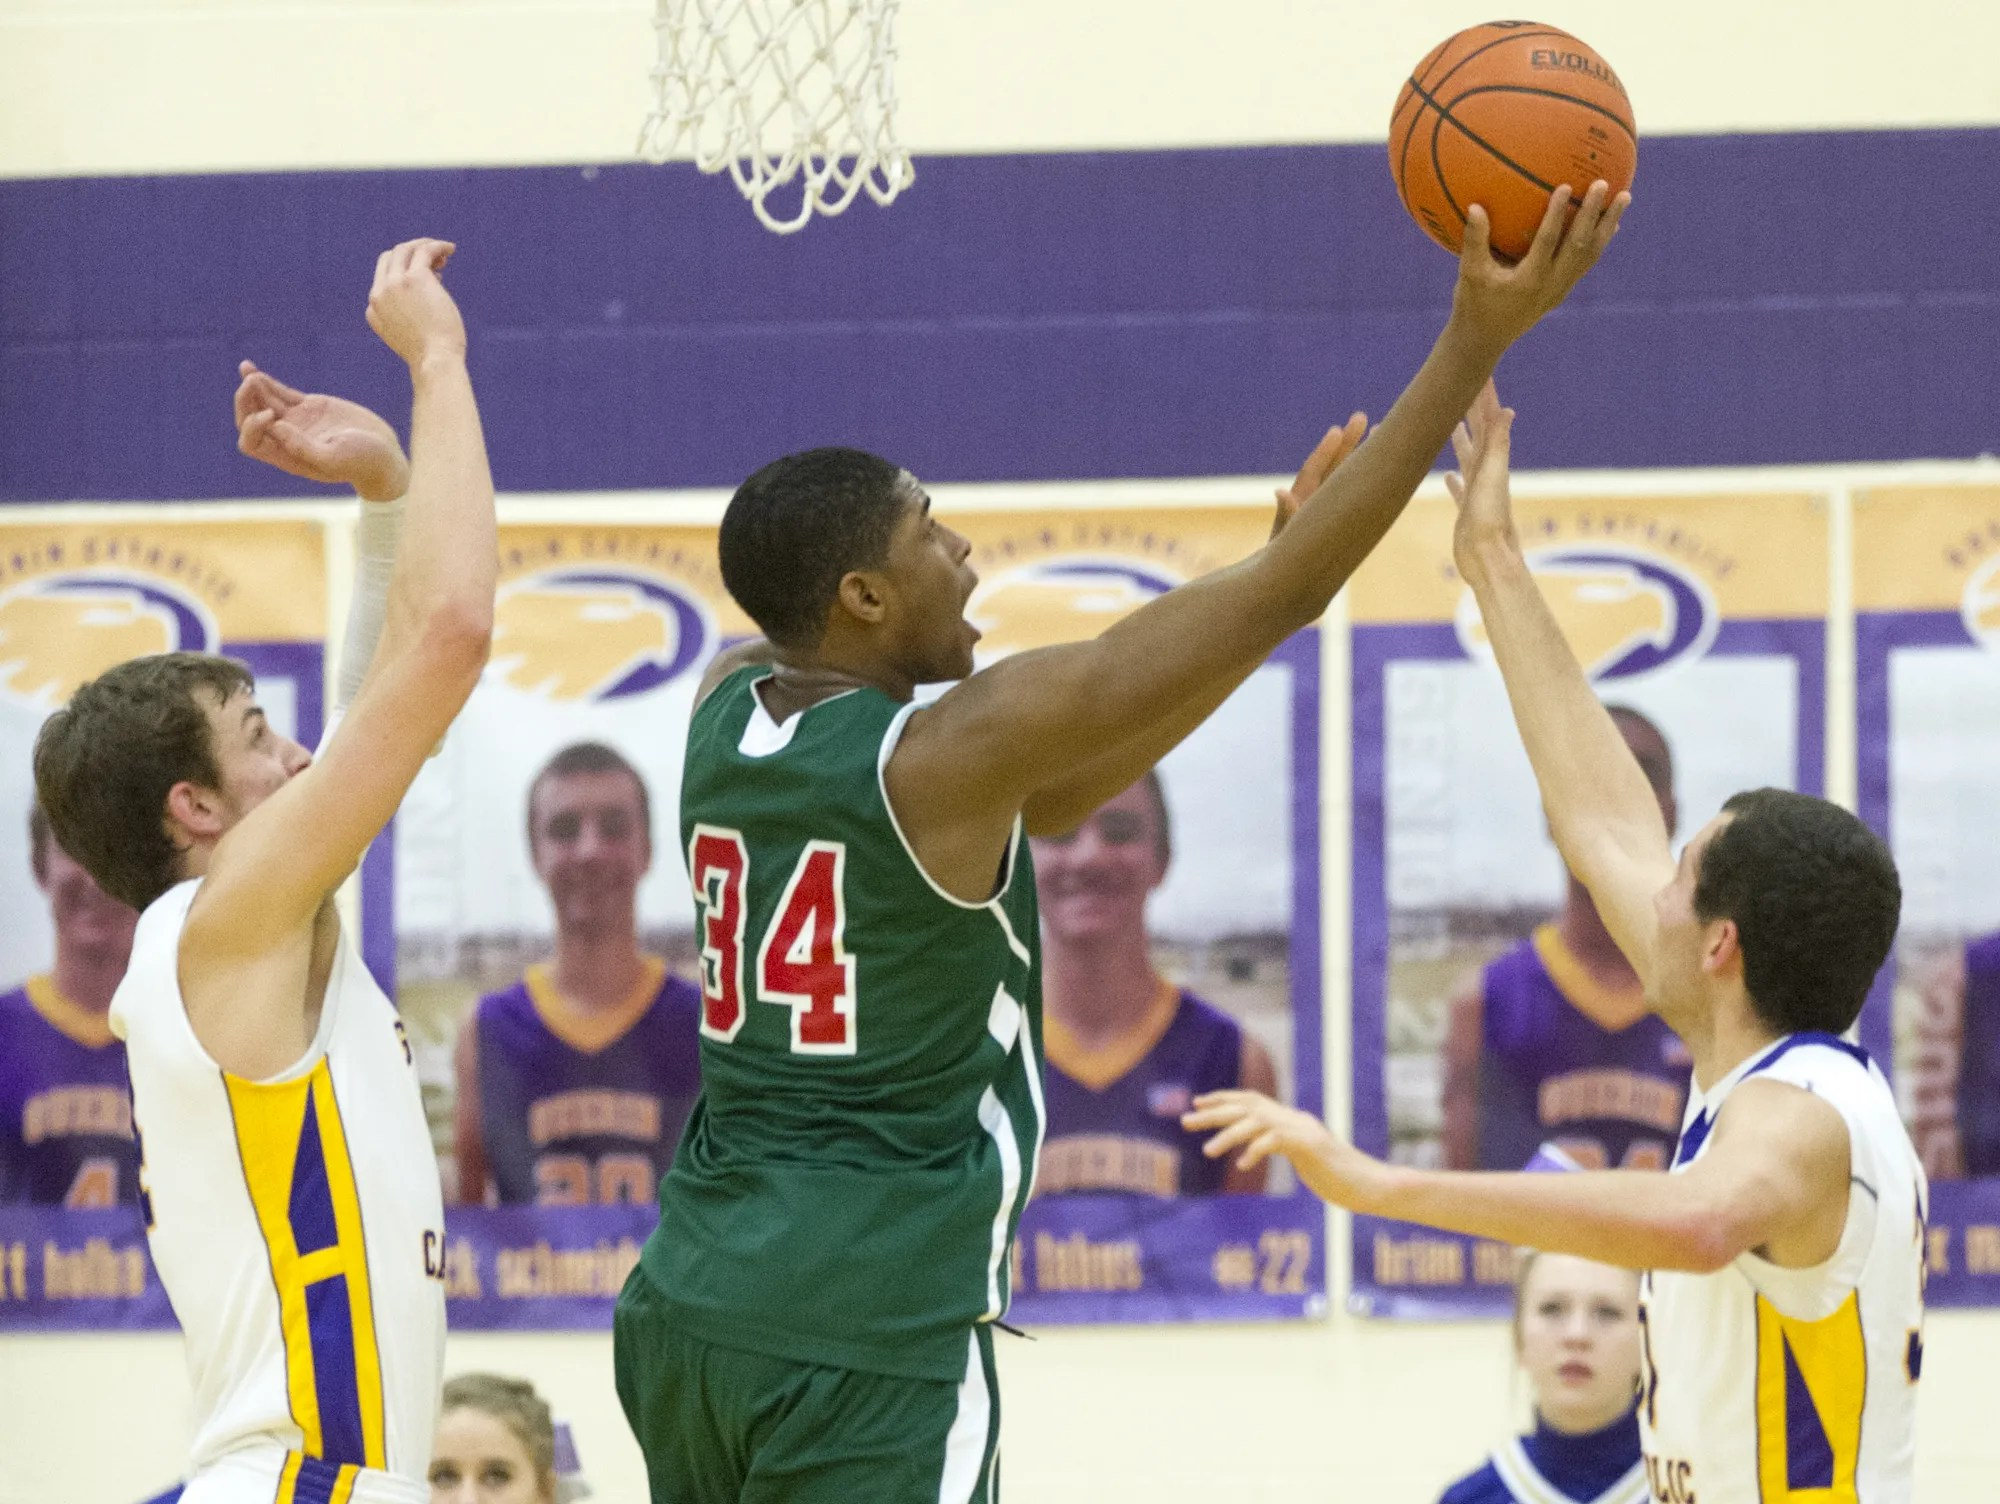 Recruiting: Lawrence North popular during evaluation ...